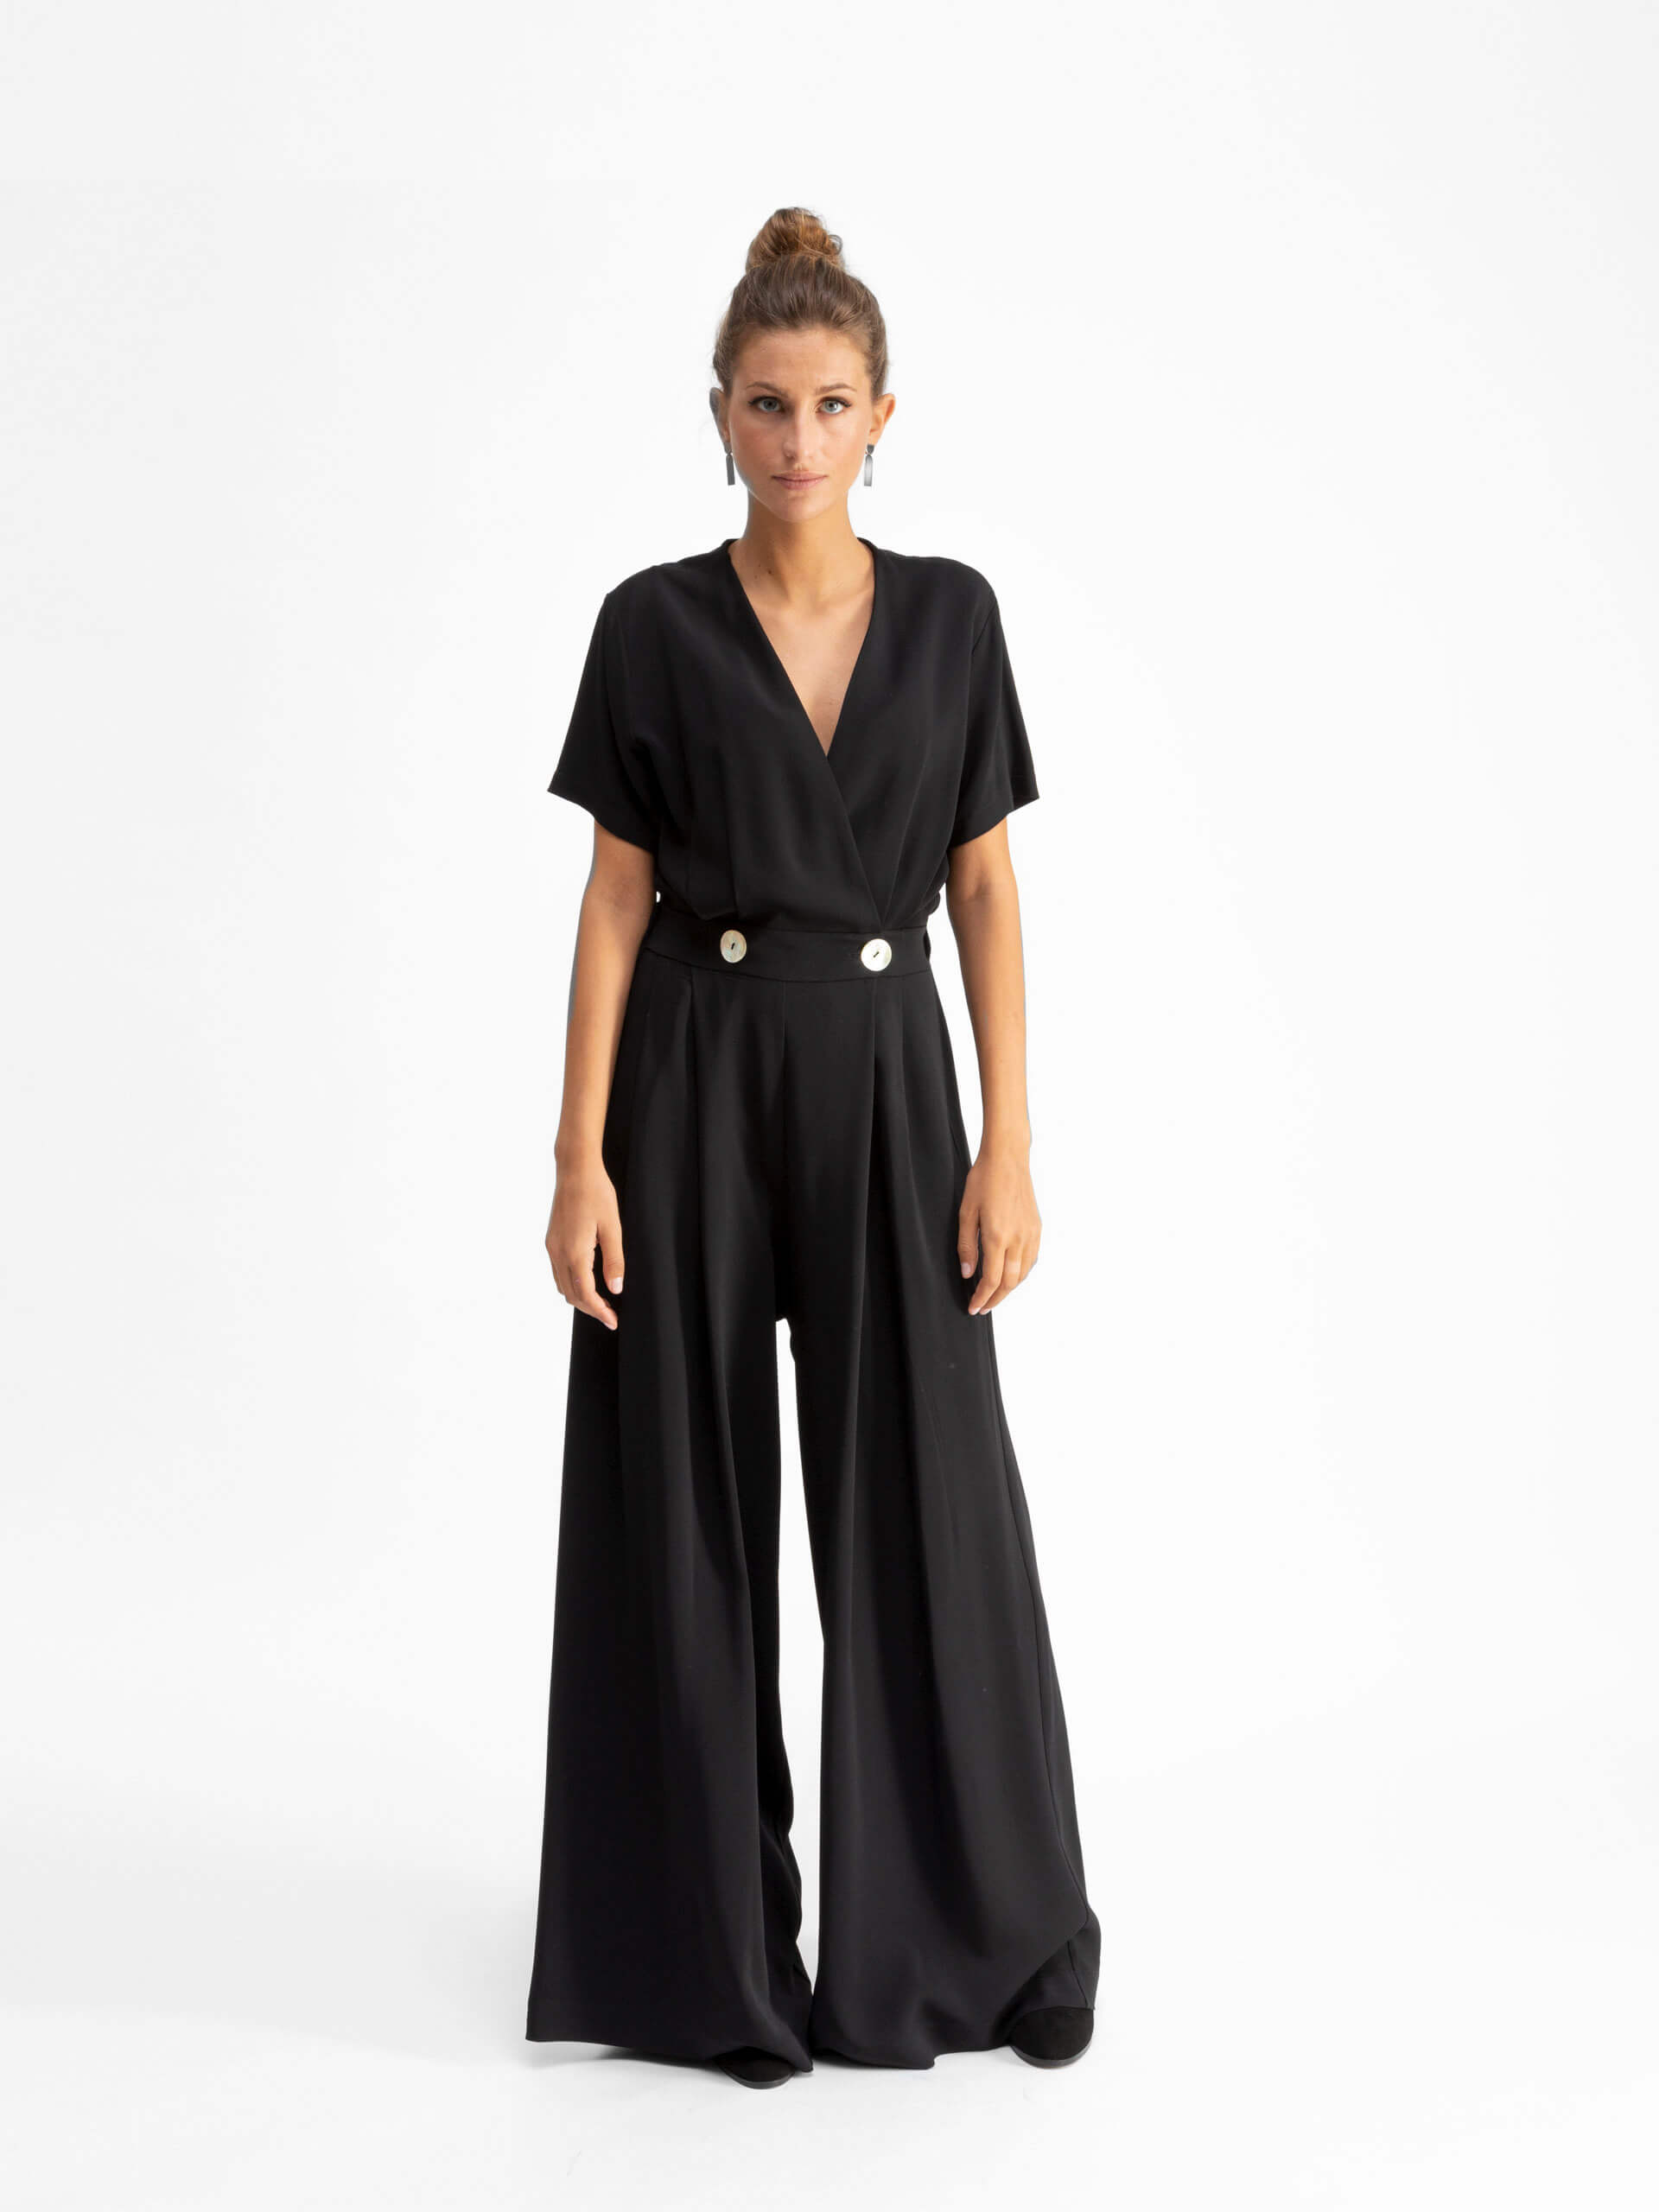 Maria jumpsuit, black